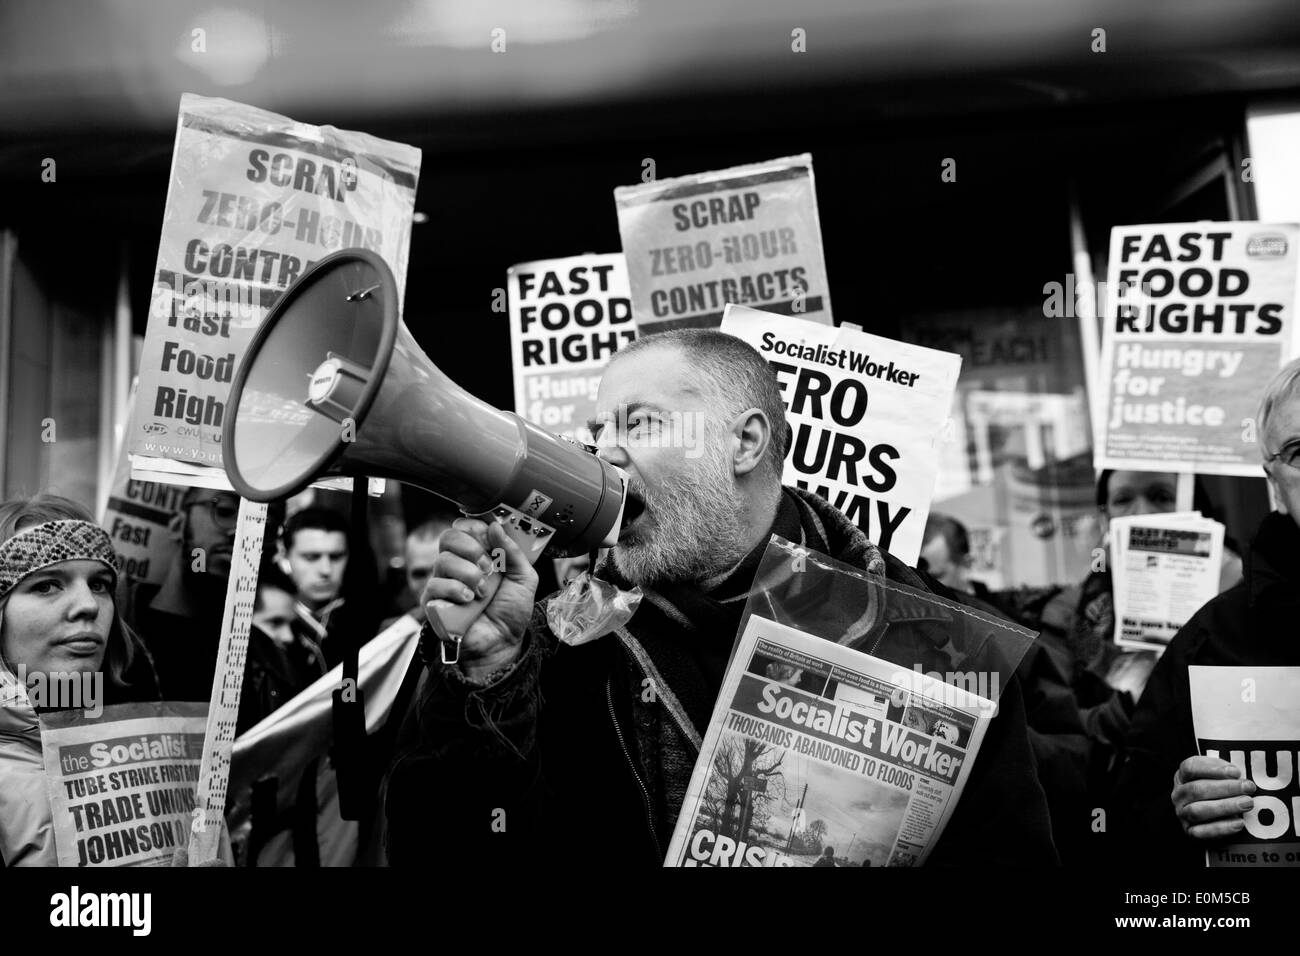 Fast food workers protest in London. - Stock Image